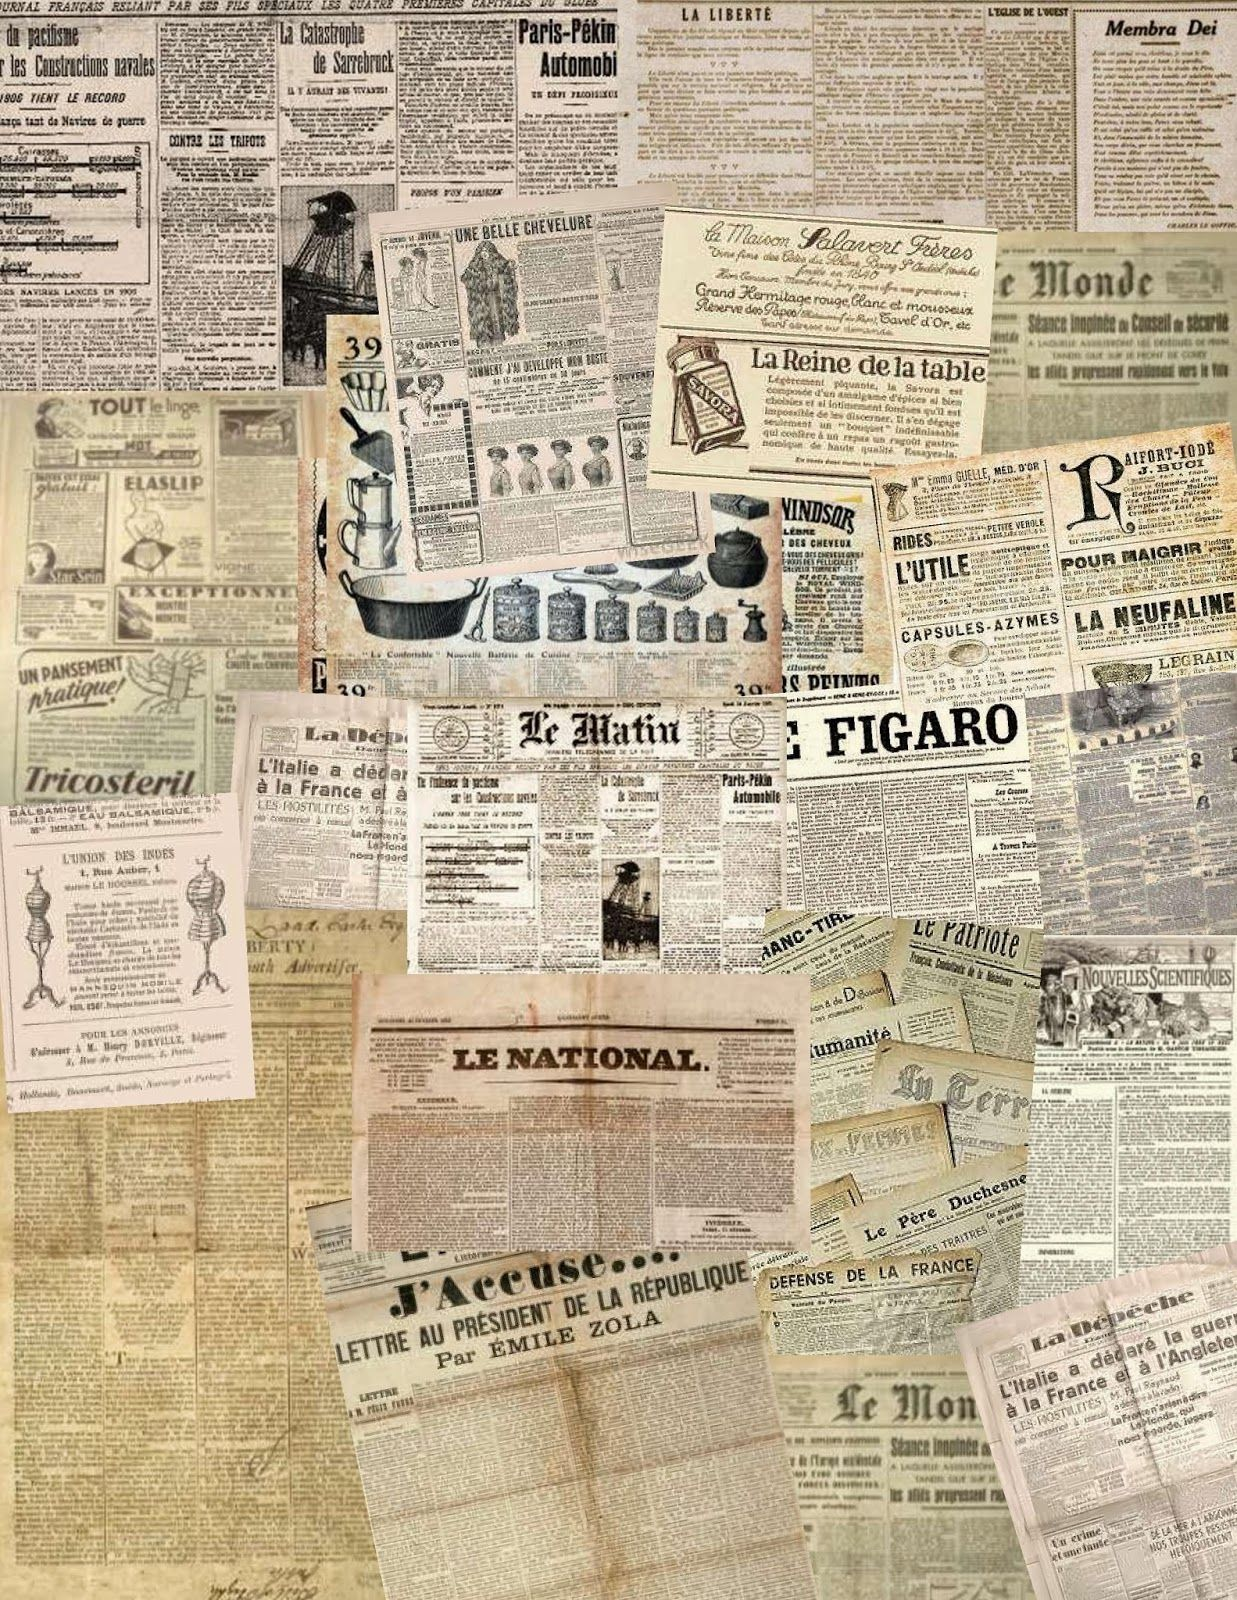 Pin By Maja Bergant On Papir Vzorci Newspaper Collage Old